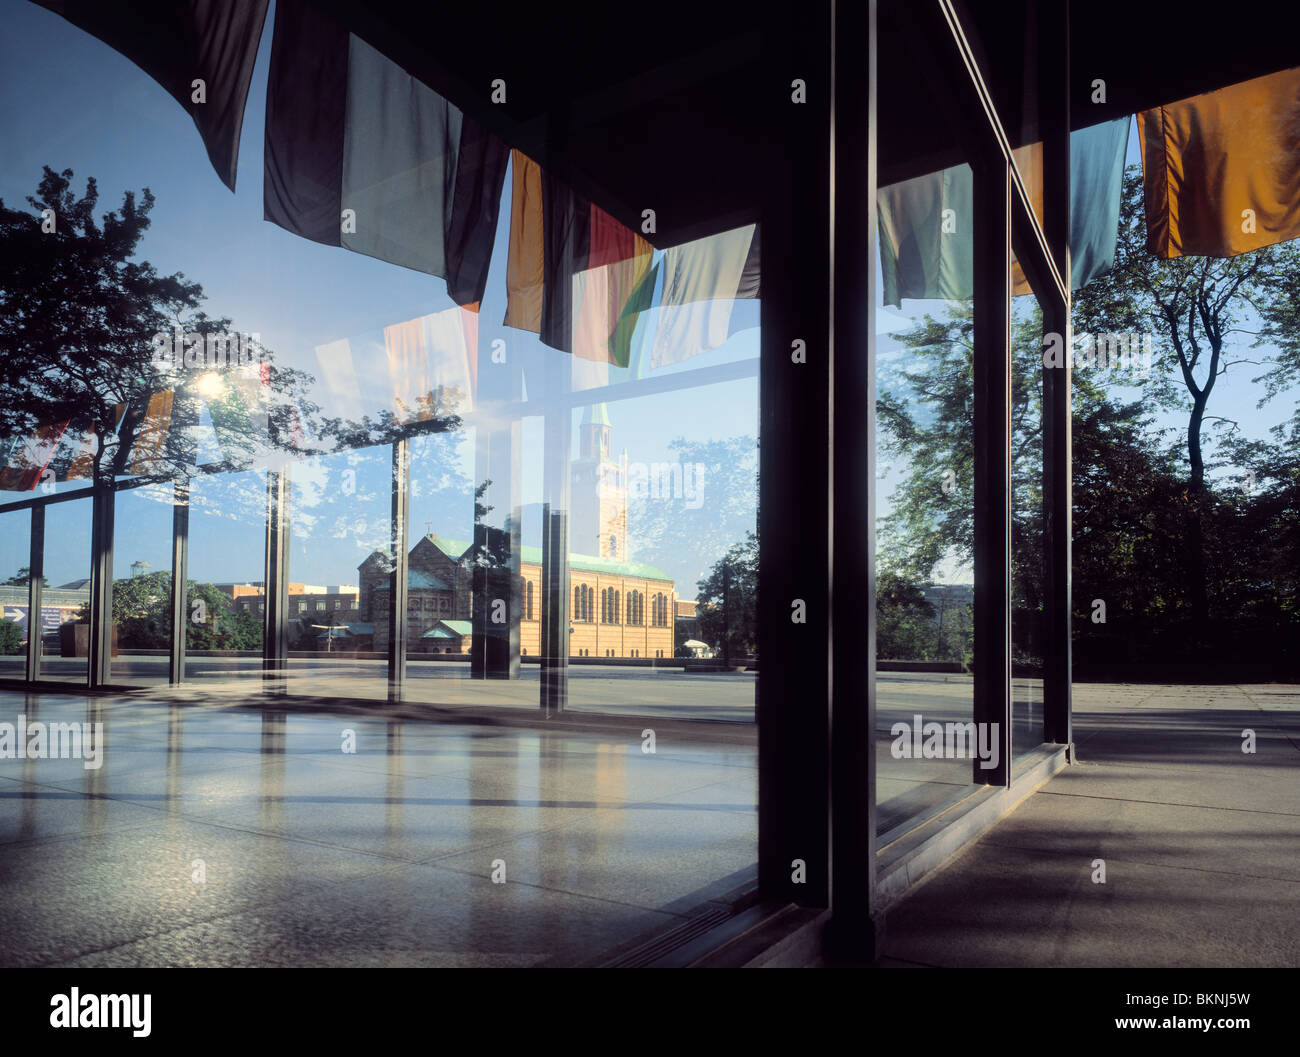 Mies Van Der Rohe Berlin Reflection In Windows Of The Neue National Gallery In Berlin Designed Stock Photo - Alamy